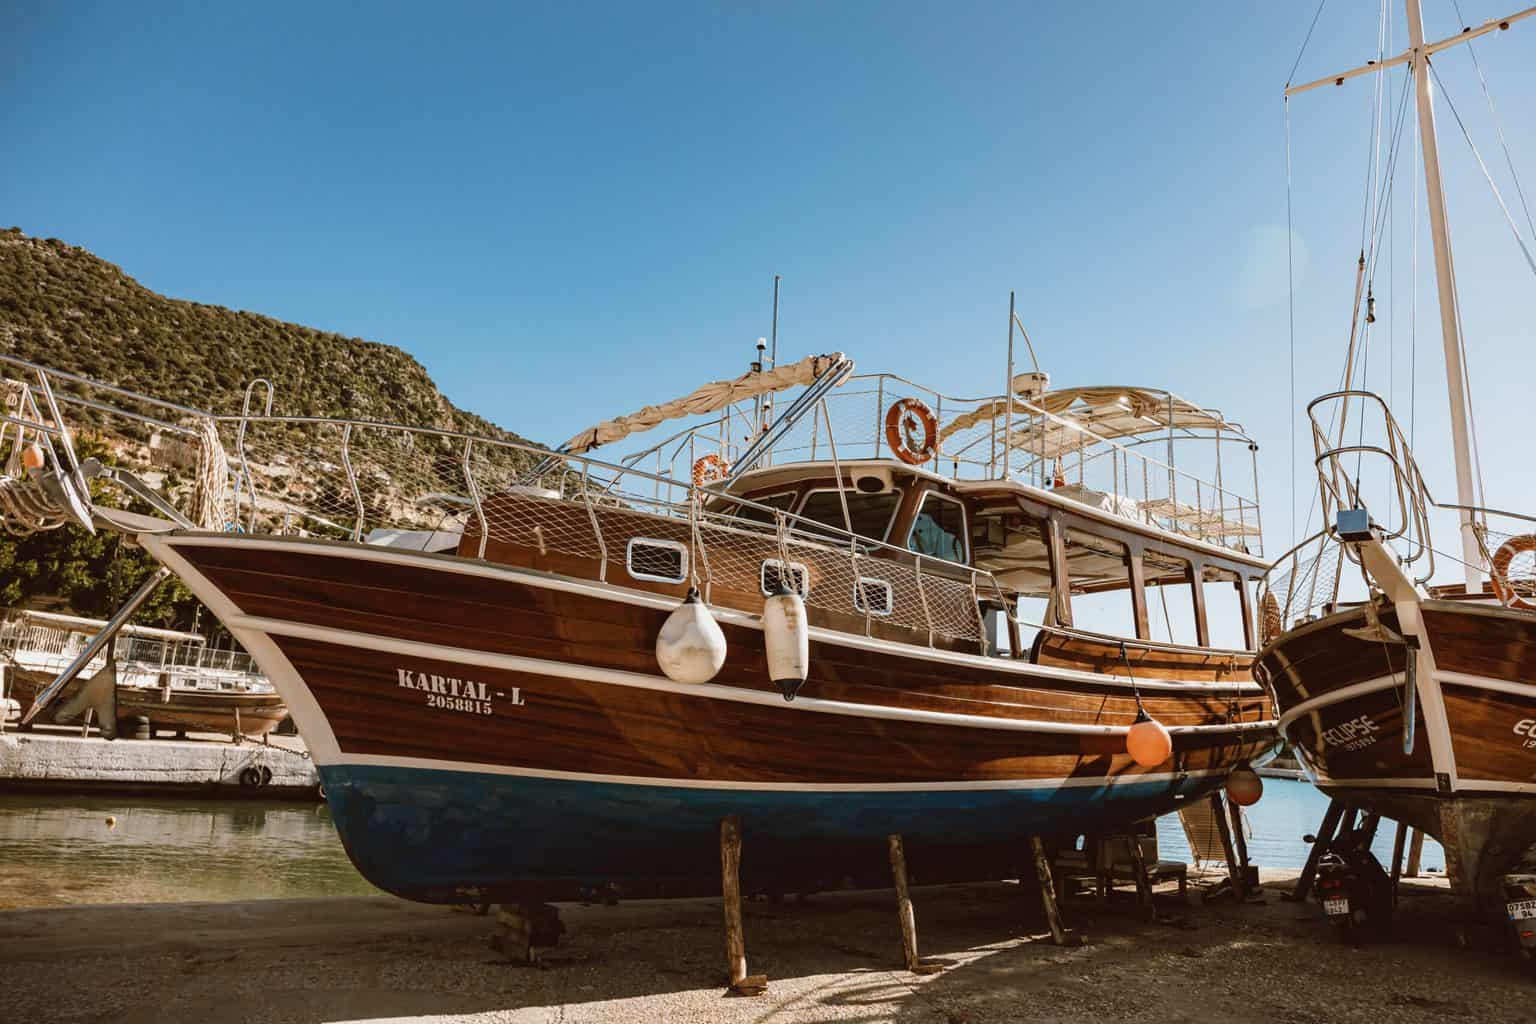 A clean brown boat